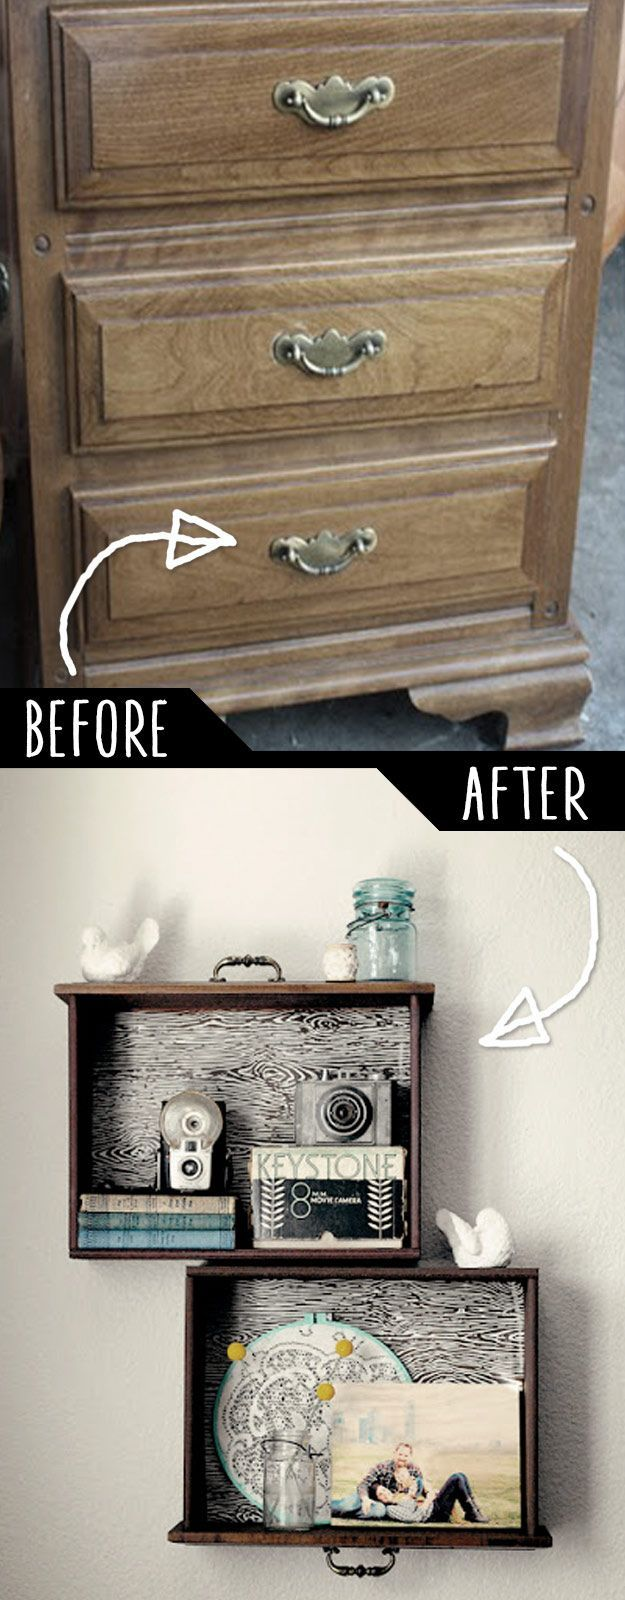 25 Best Ideas About Diy Bedroom Decor On Pinterest Kids Bedroom Diy Girls Bed Room And Diy